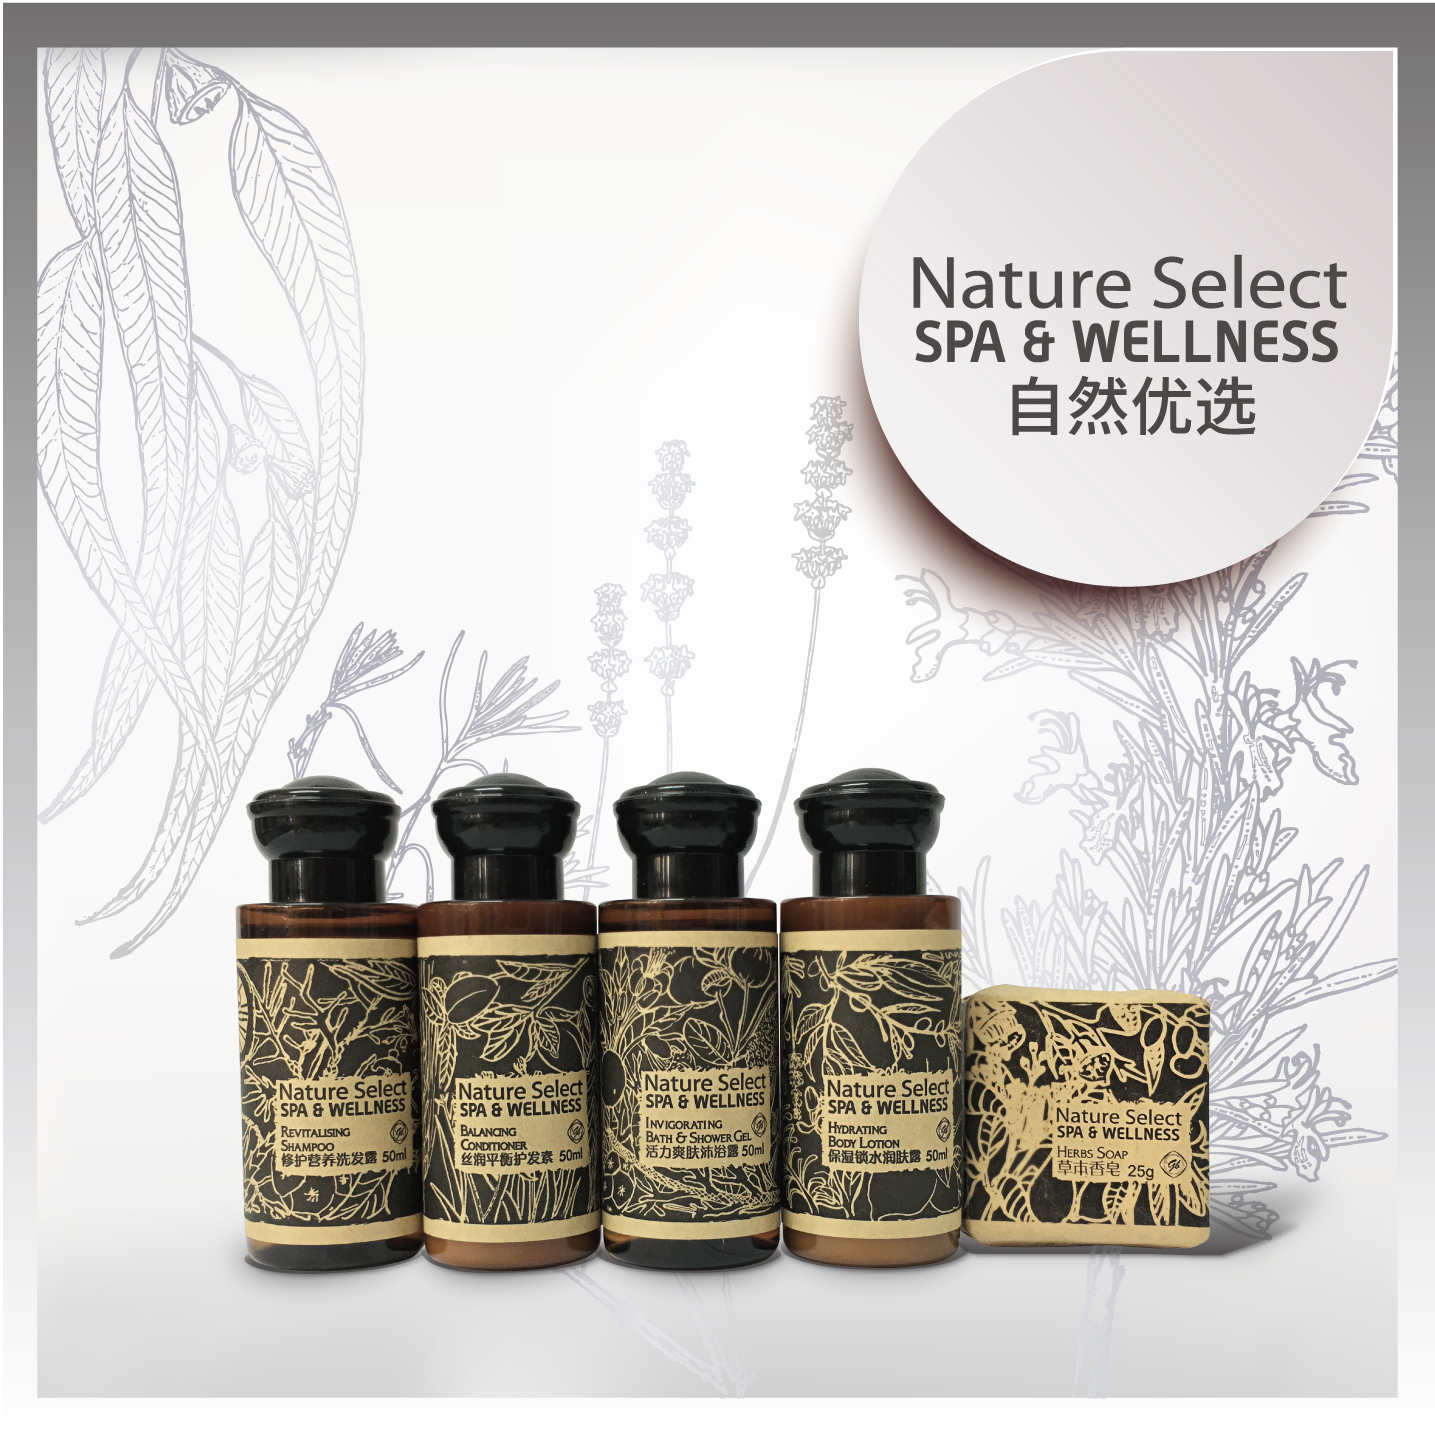 意大利品牌  Nature Select SPA & WELLNESS 品牌洗发沐浴套装